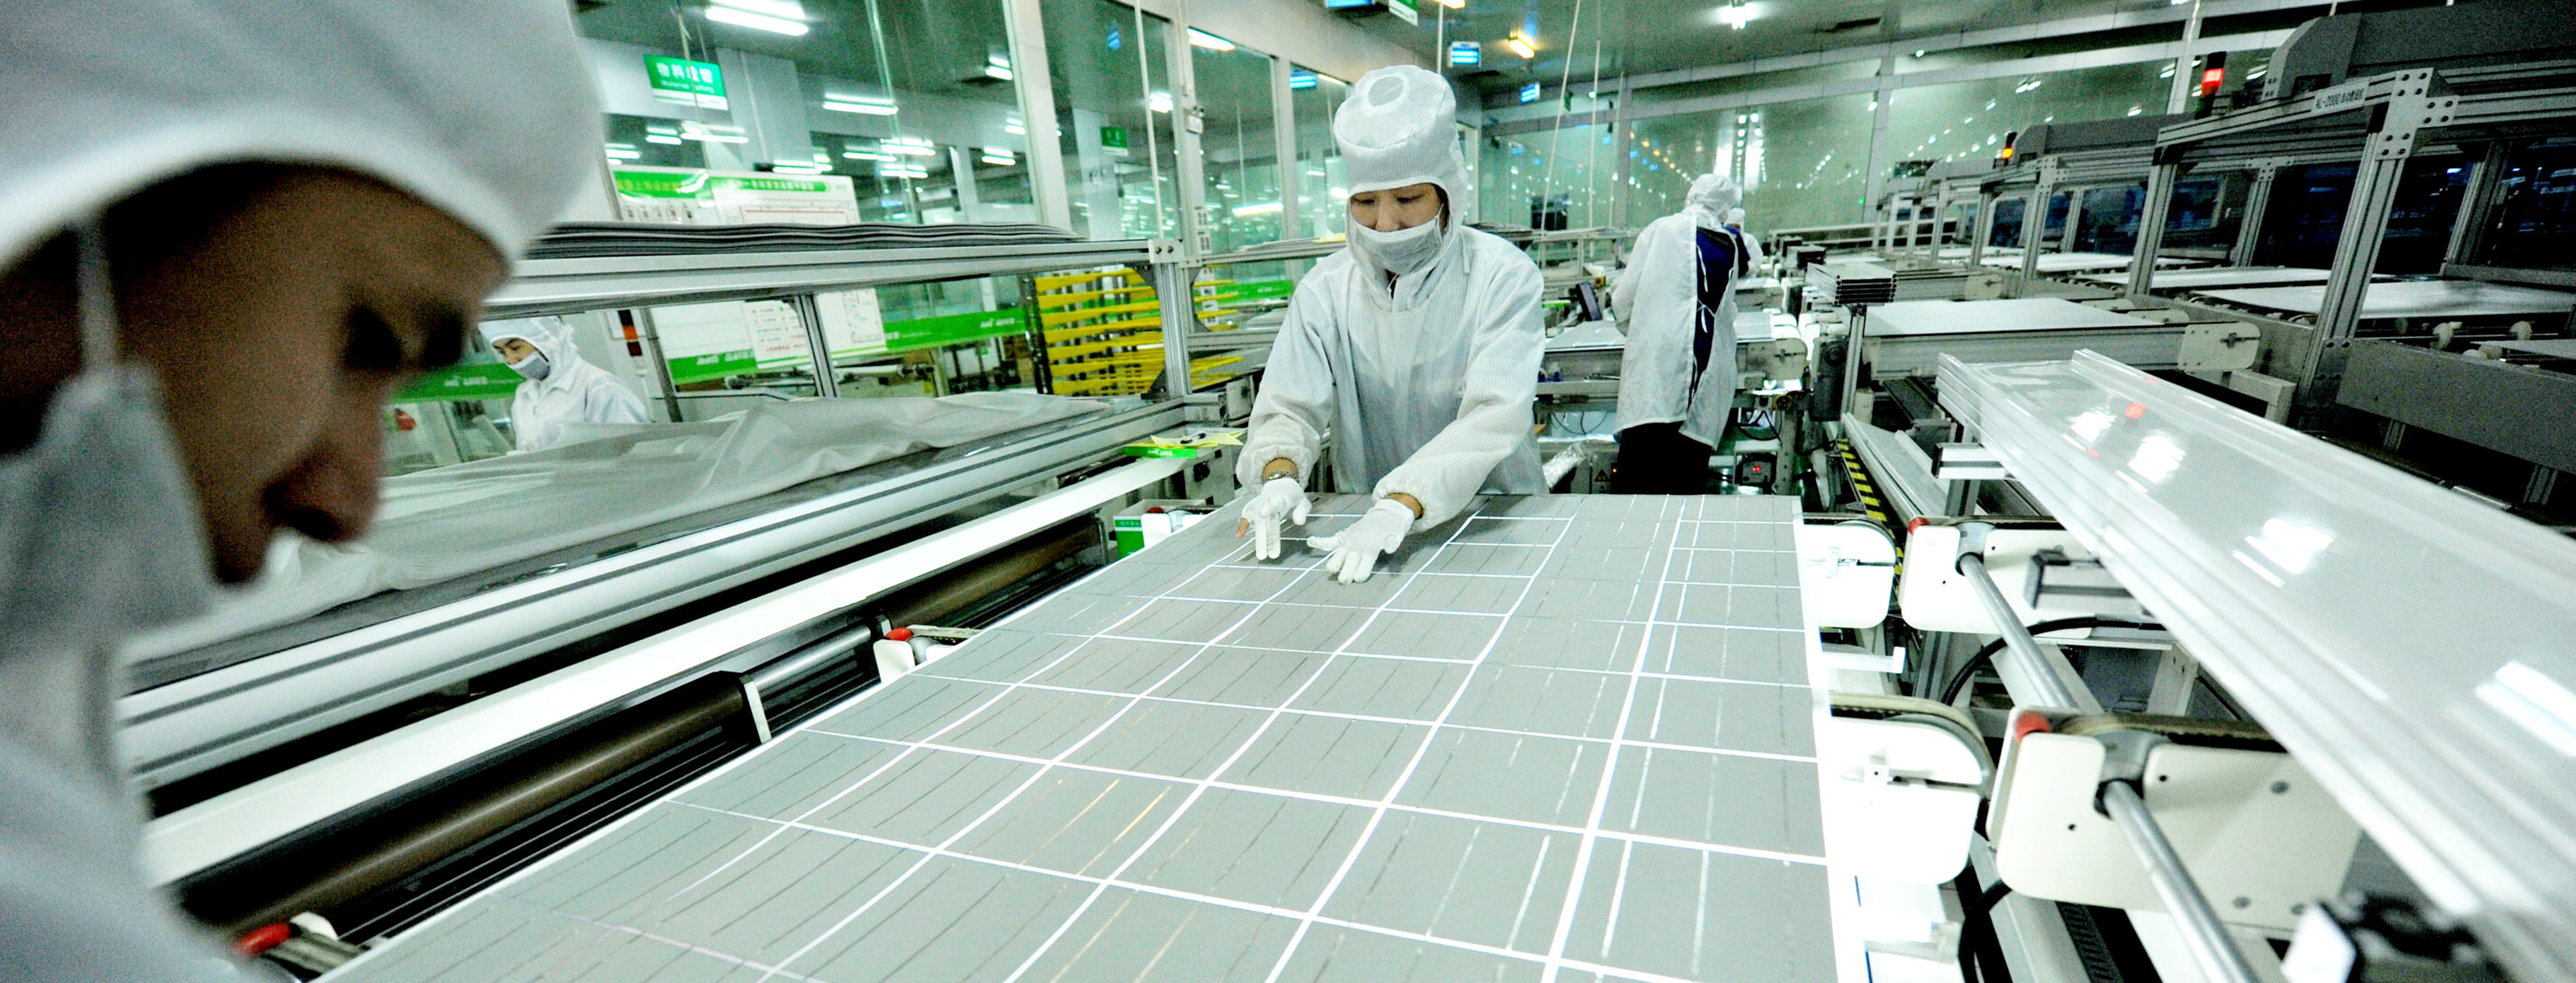 China's solar manufacturing output tops $31 billion in H1